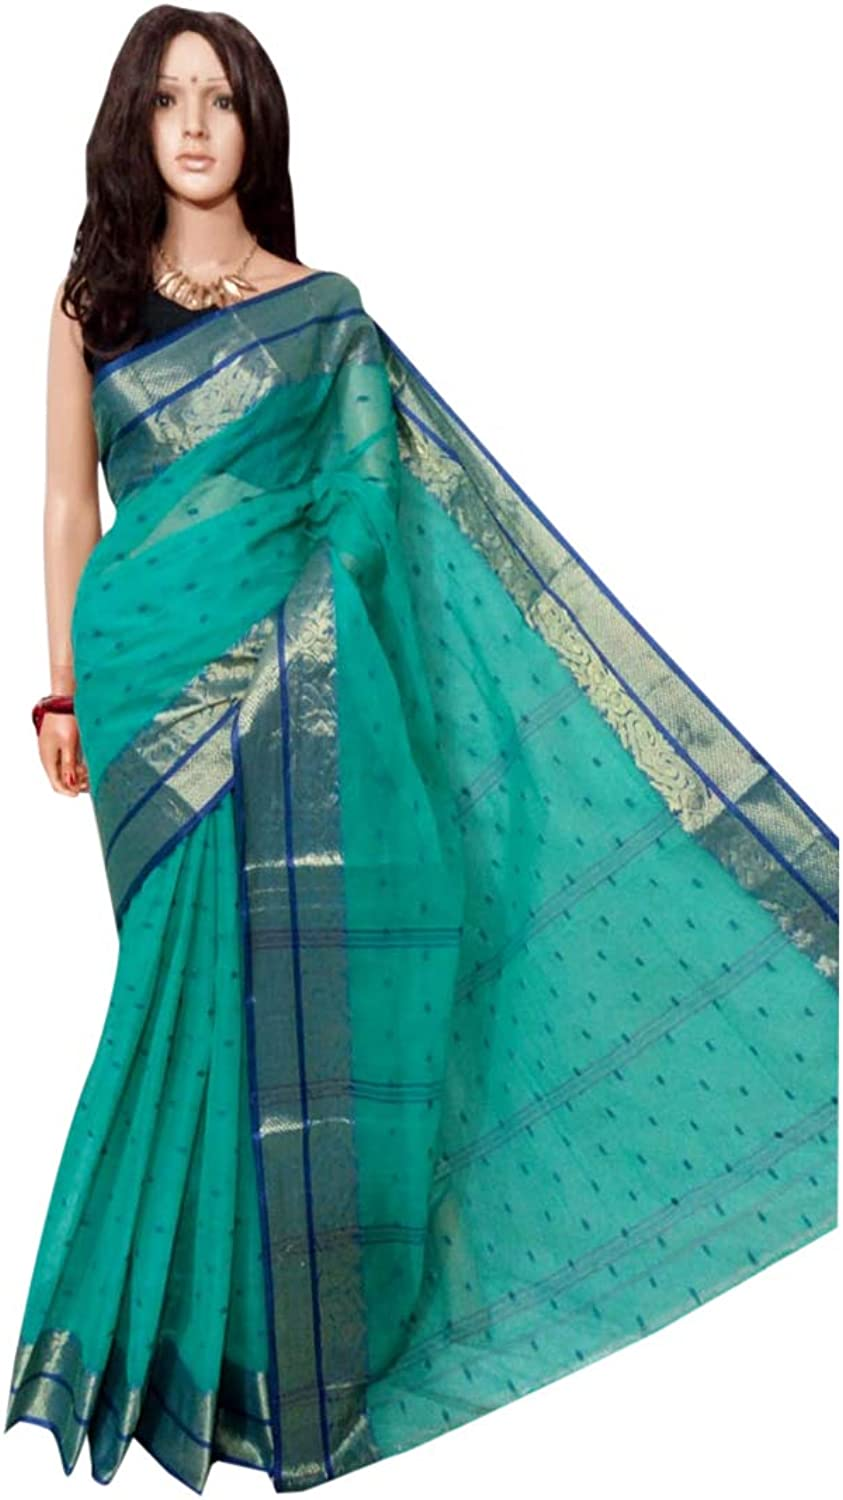 bluee Indian Ethnic Pure Cotton tant Sari small print work Beautiful Border work Women saree Festive offer 102A